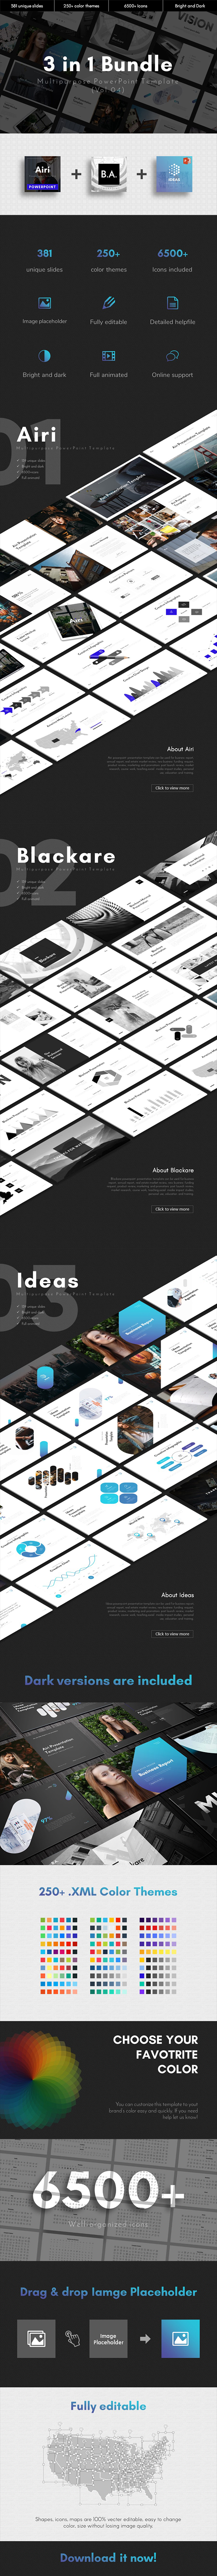 3 in 1 Multipurpose PowerPoint Template Bundle (Vol.04) - Business PowerPoint Templates